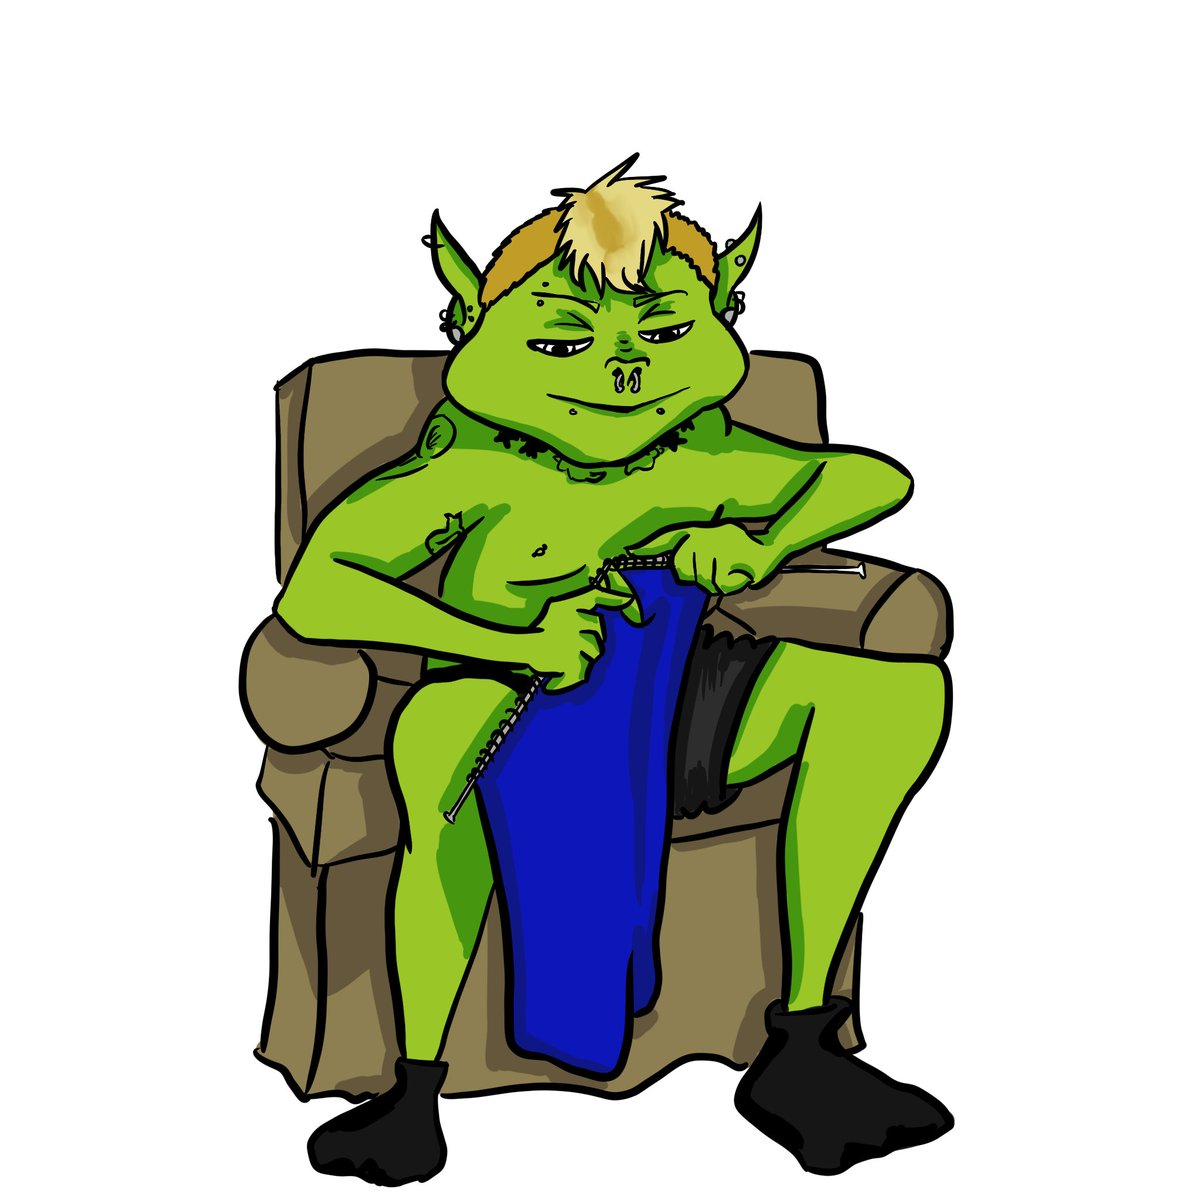 This is what I think I must look like when I'm knitting in the middle of the night to wind down #art #illustration #digitalart #Goblin #knitting #draw #drawing #visualart #DigitalArtist #digitalartwork #digitalillustrationpic.twitter.com/vyY7BzF67n